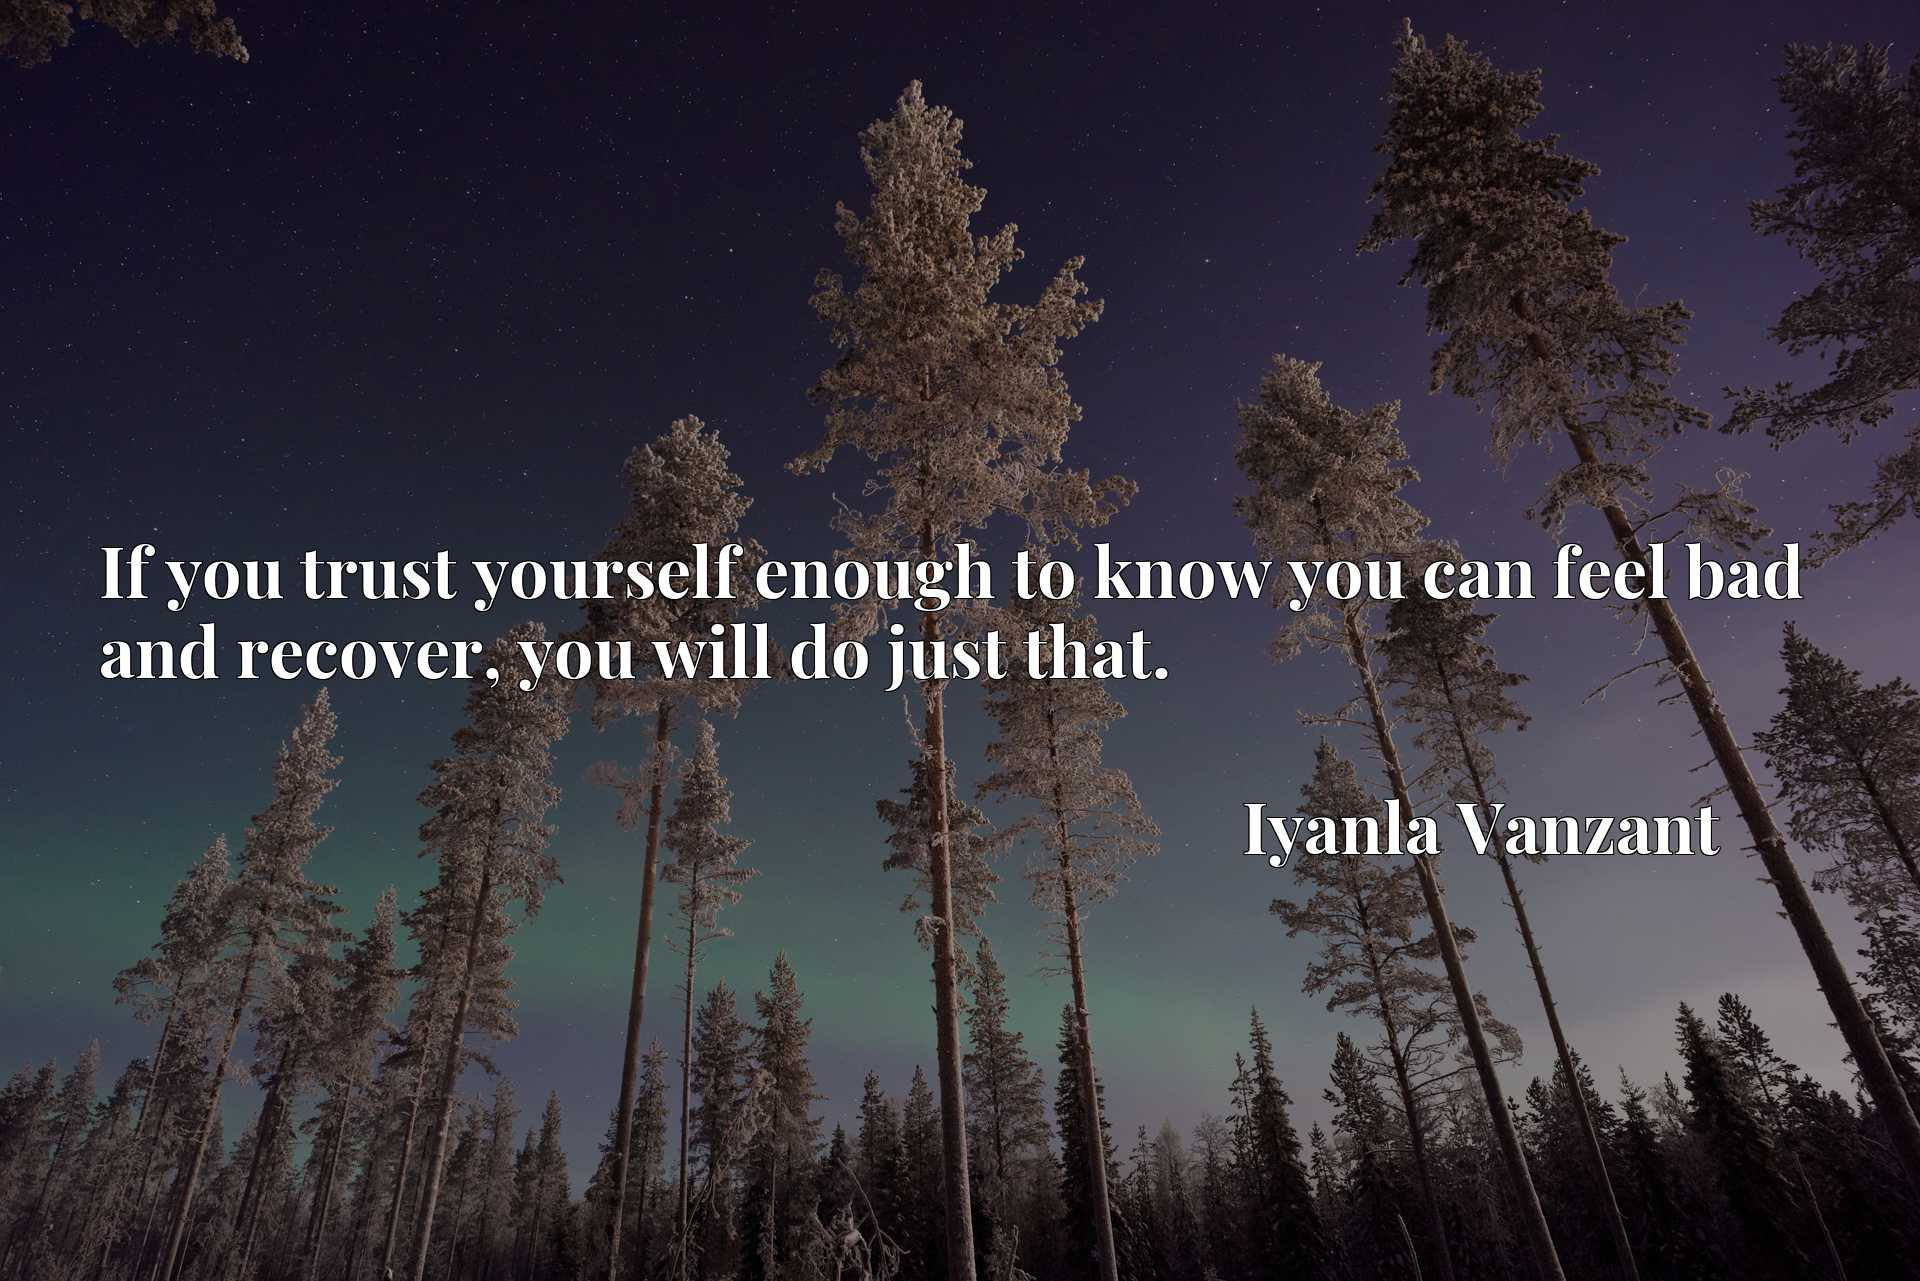 Quote Picture :If you trust yourself enough to know you can feel bad and recover, you will do just that.